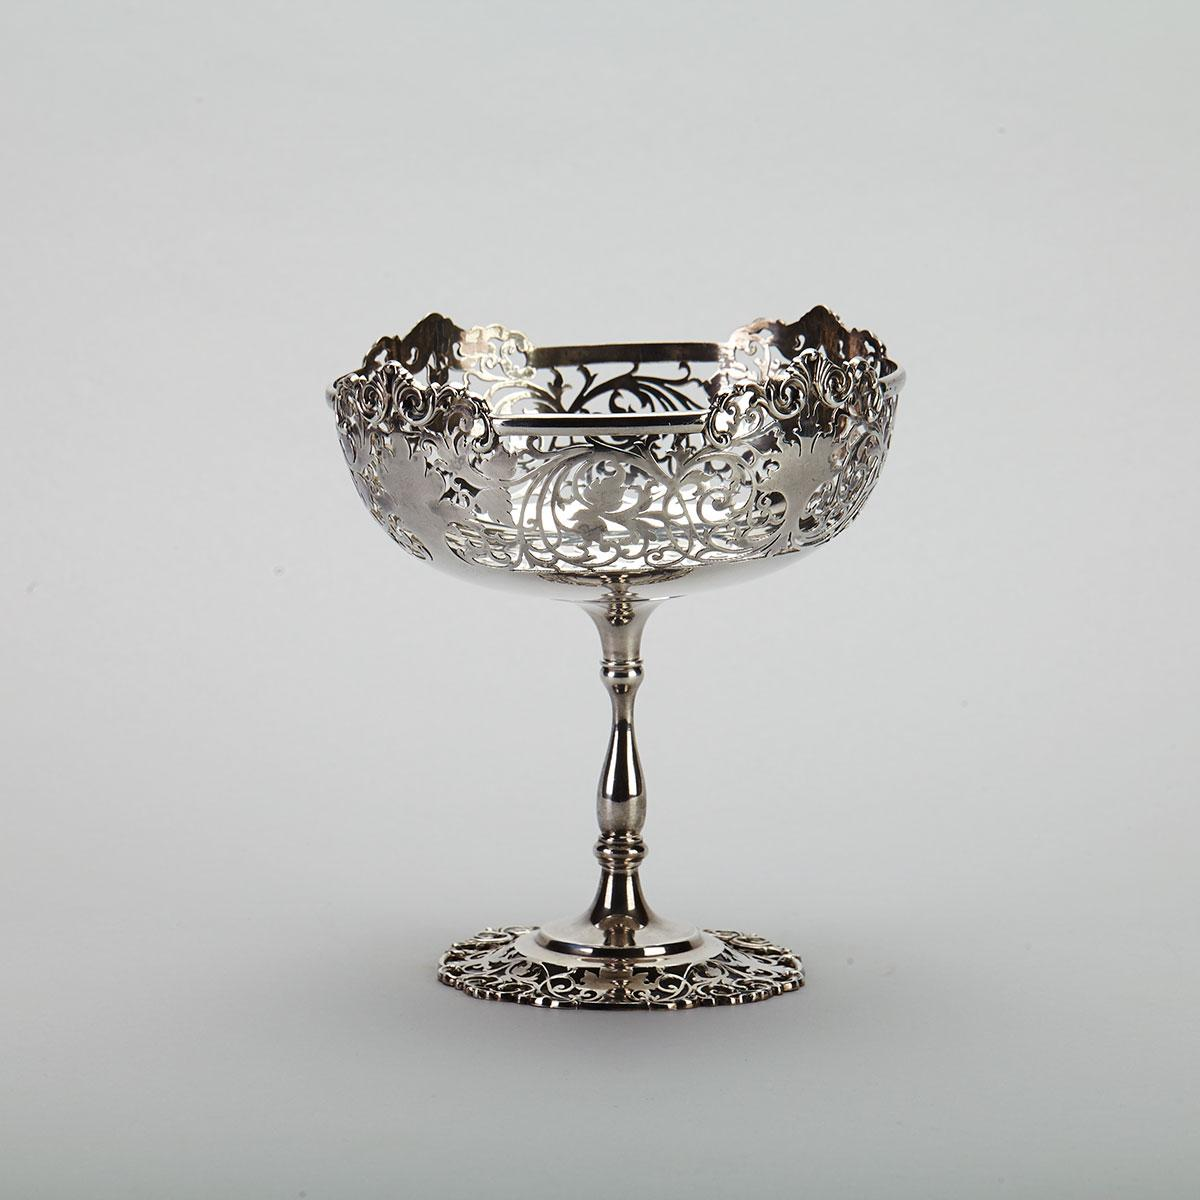 English Silver Footed Comport, Mappin & Webb, Sheffield, 1919